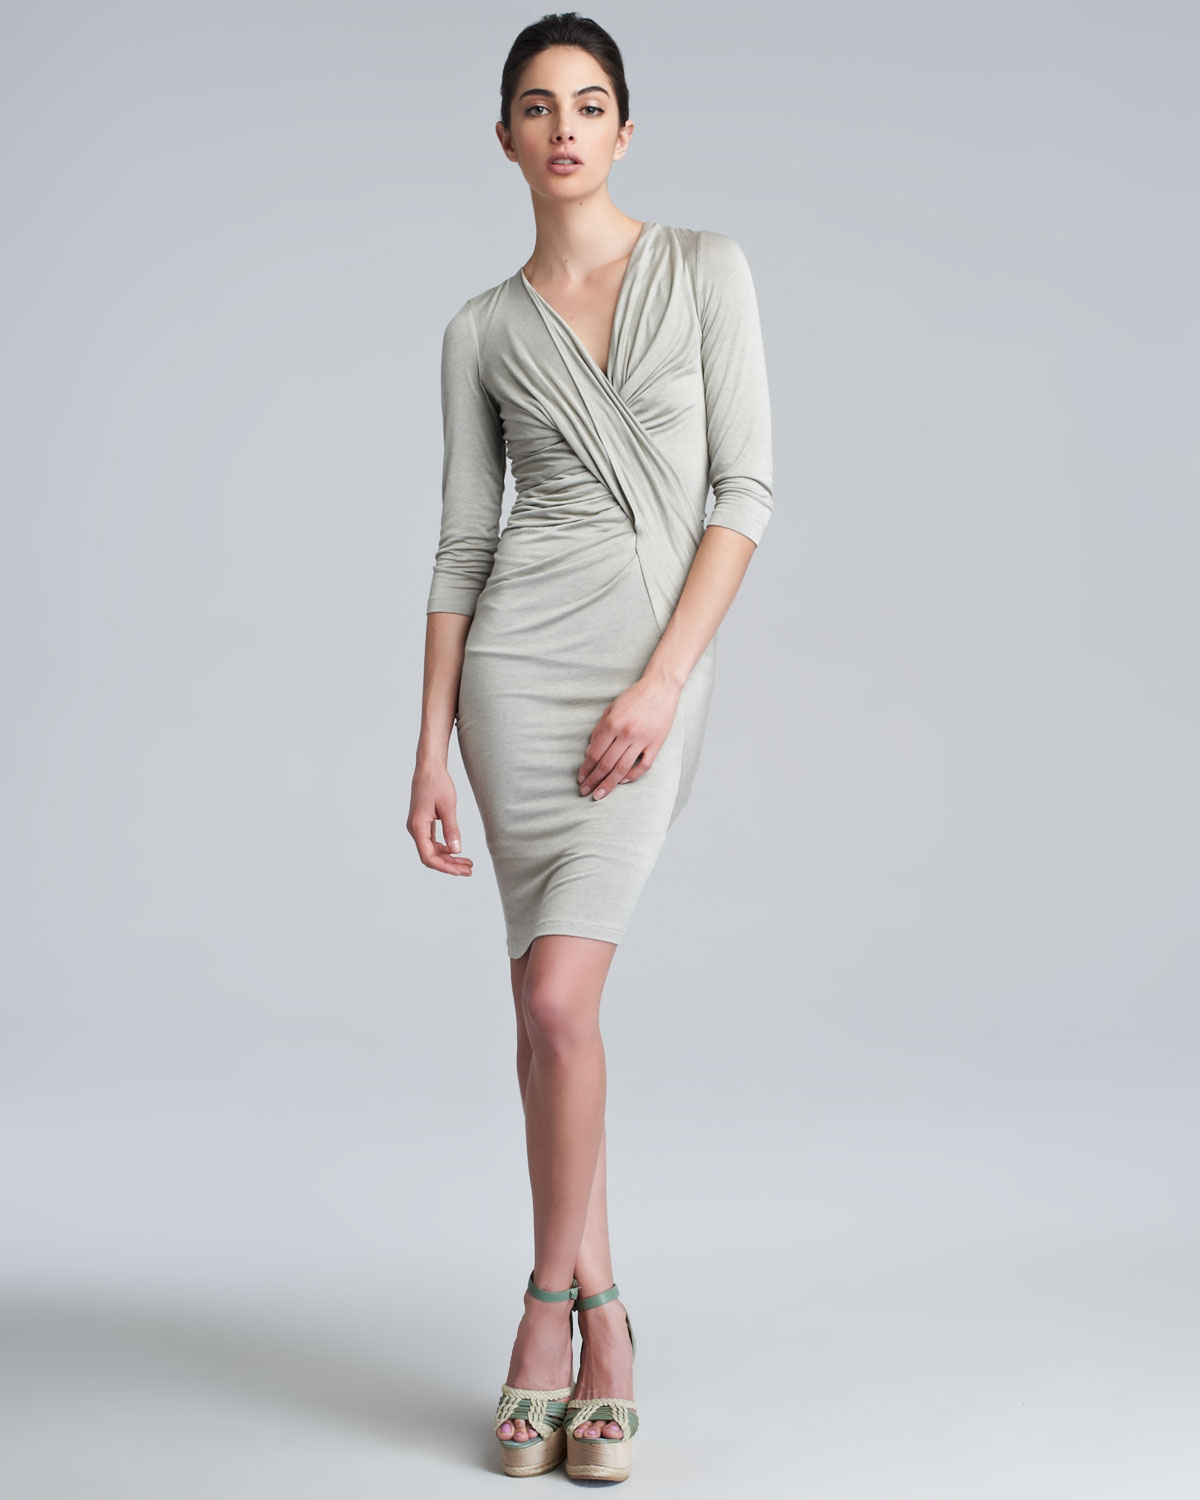 Donna karan Threequartersleeve Vneck Draped Dress Hemp in Gray | Lyst